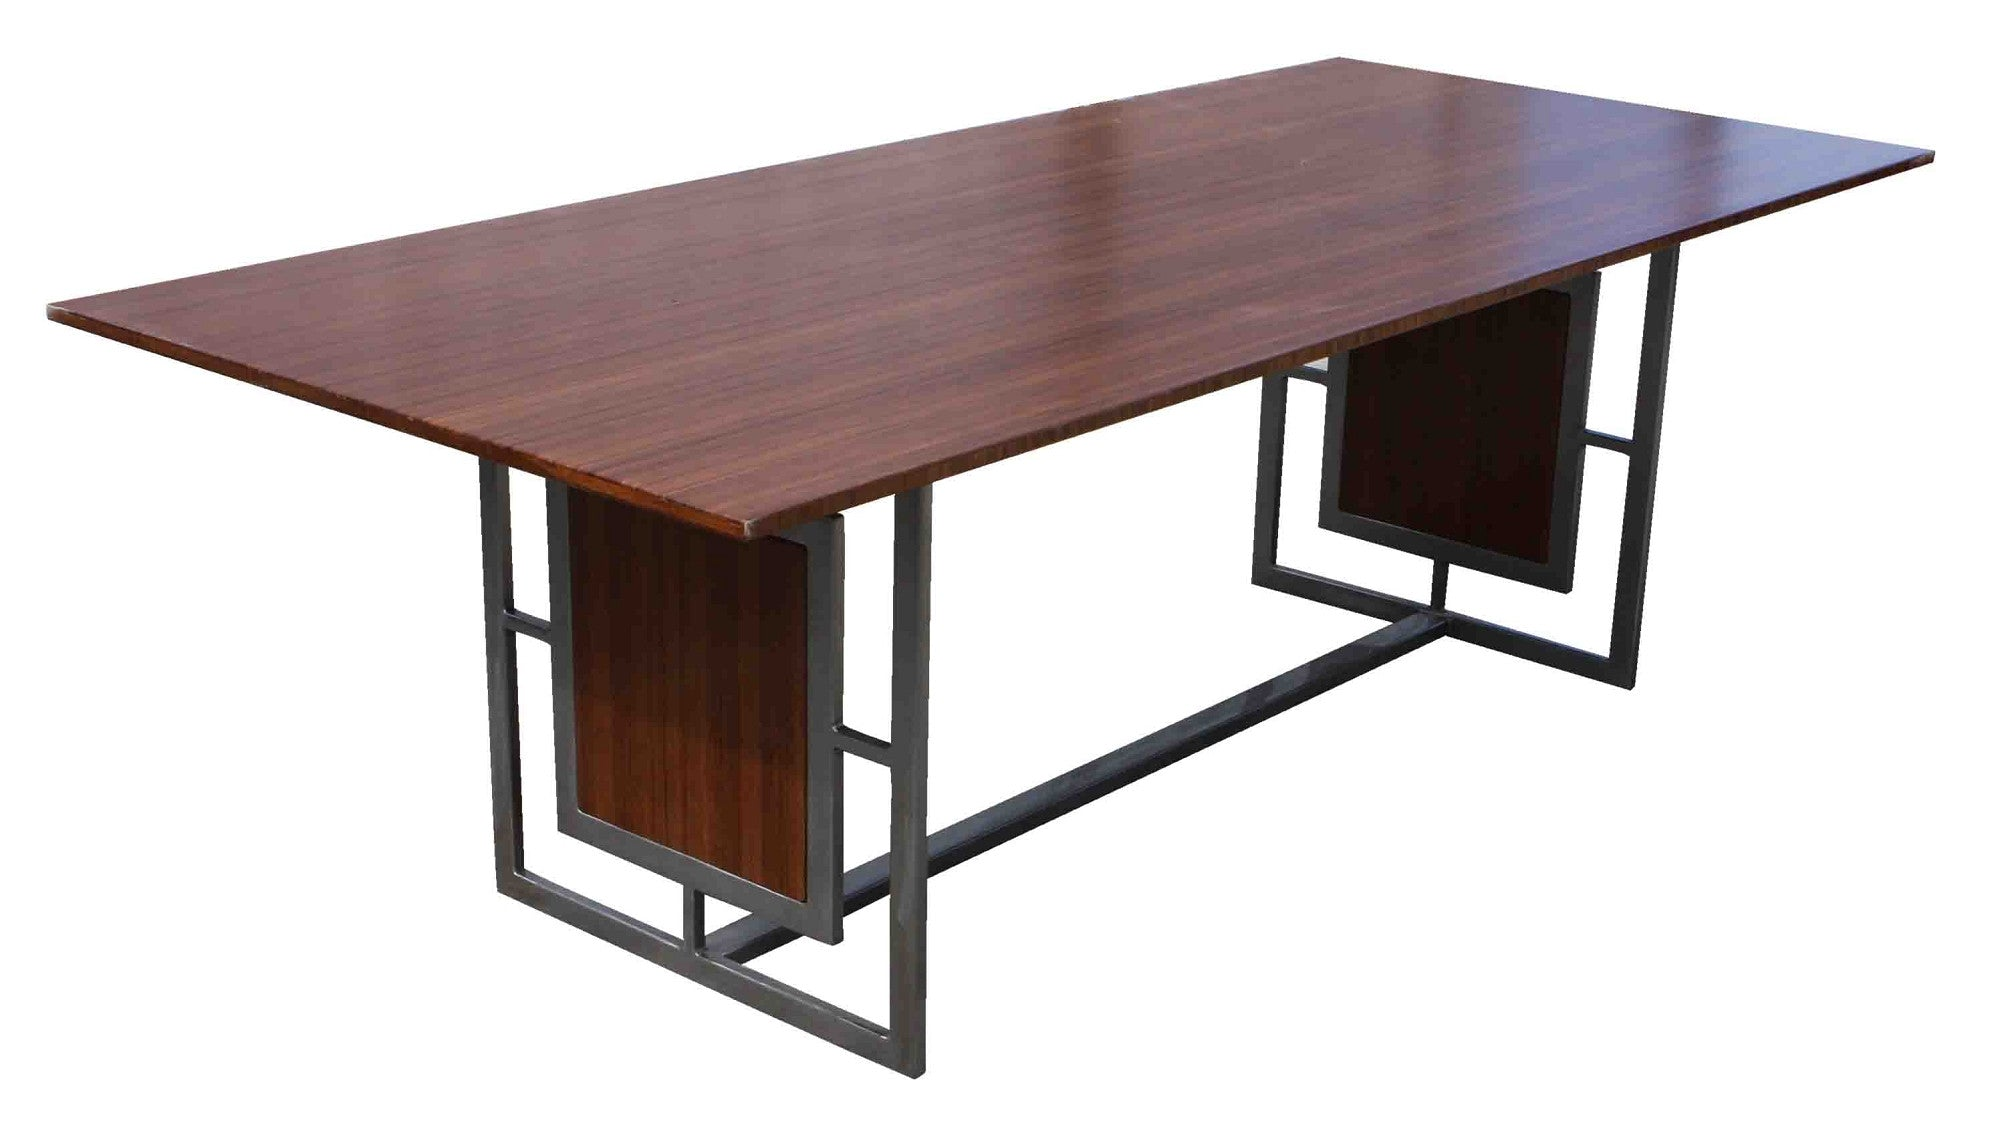 Lloyd Dining Table Mortise Tenon - 36 x 96 conference table